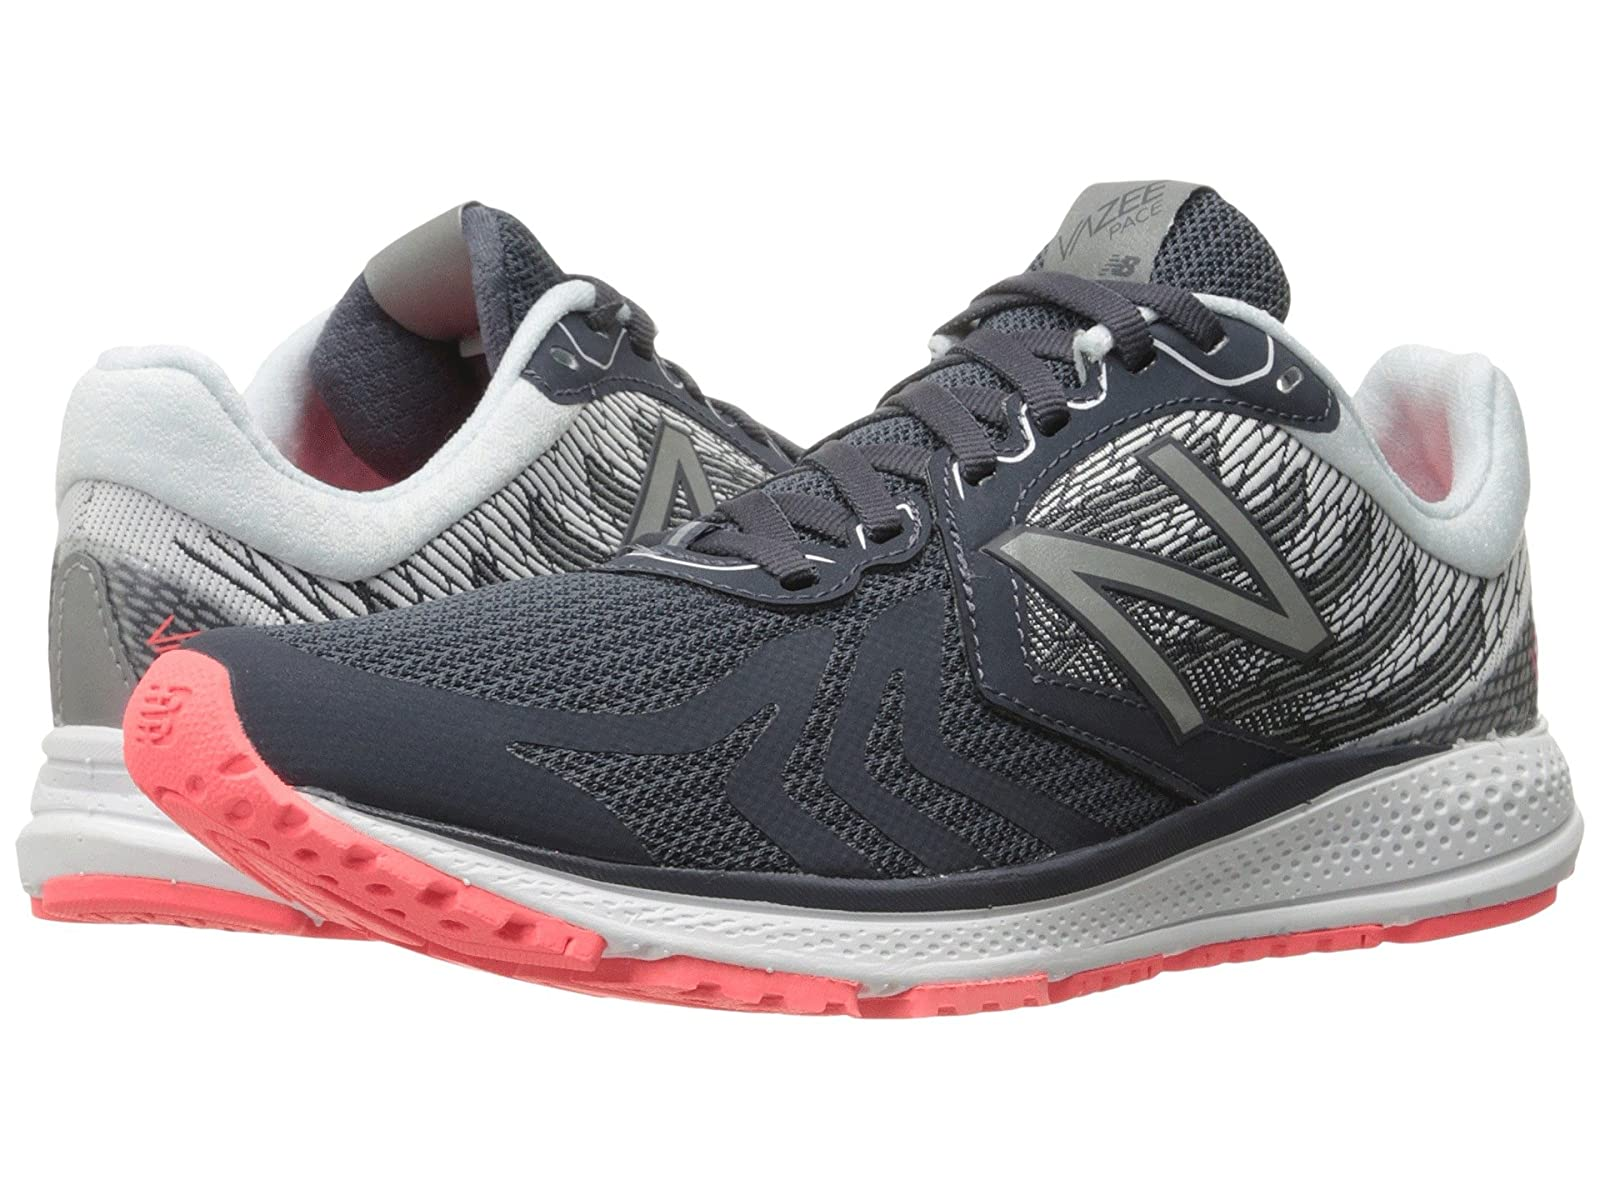 New Balance Vazee Pace v2Cheap and distinctive eye-catching shoes